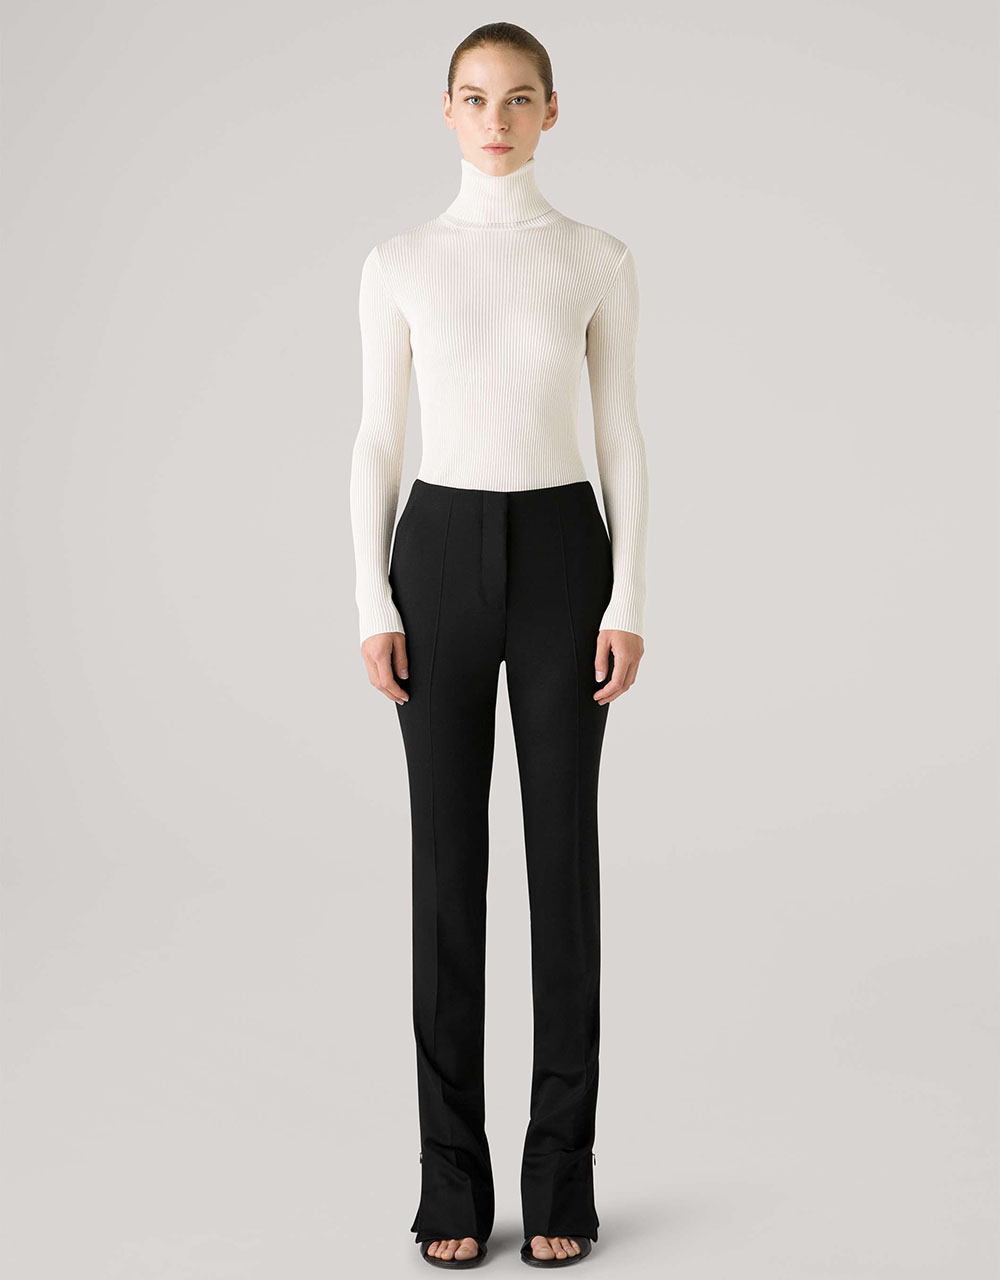 St John Fall 2021 Collection I Everyday turtleneck and black trousers #fashionstyle #ootdstyle